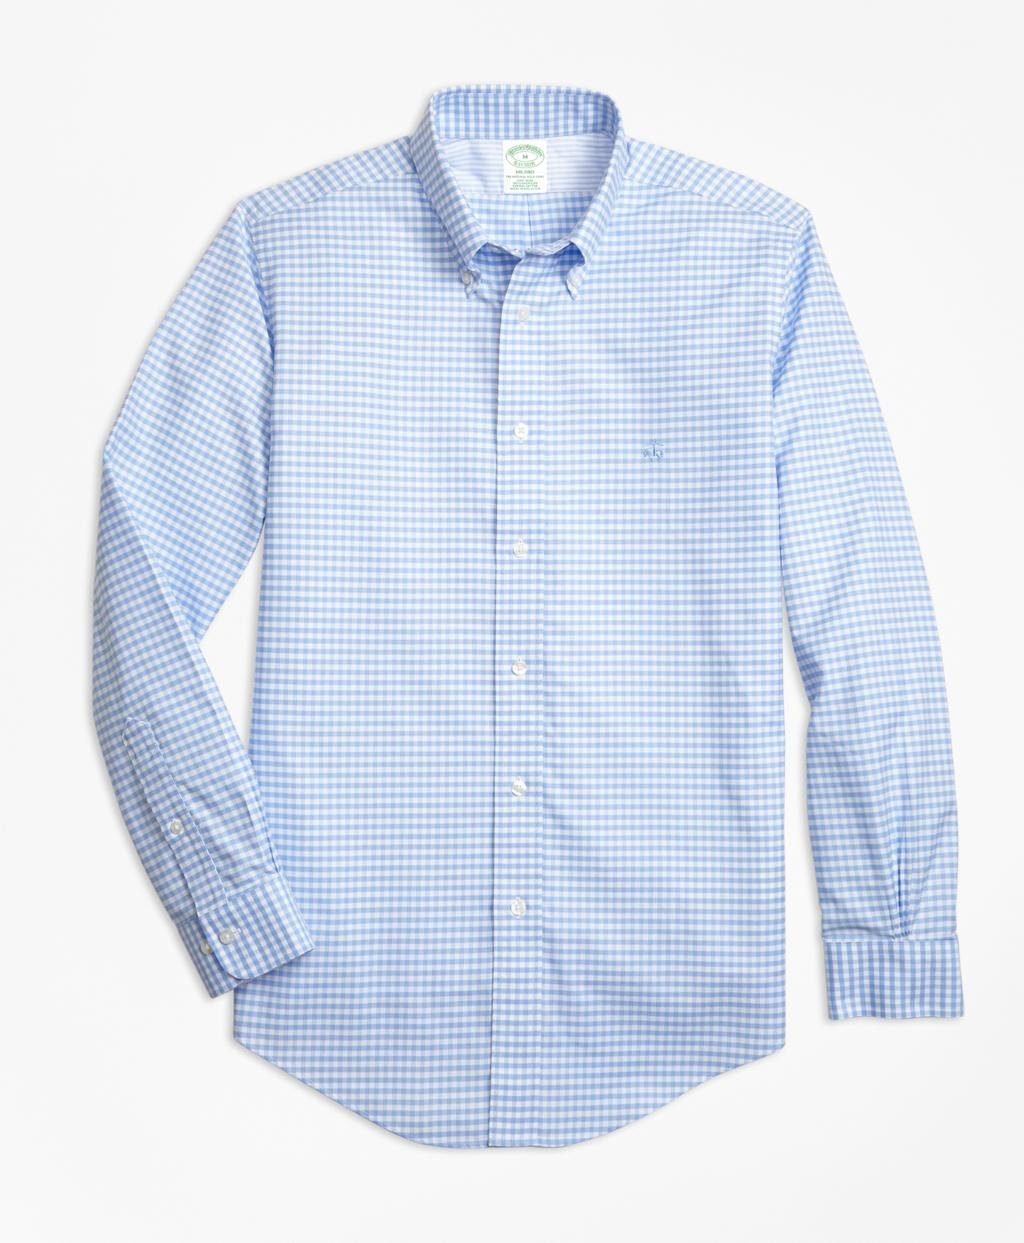 Lyst brooks brothers non iron milano fit gingham sport for Brooks brothers non iron shirts review